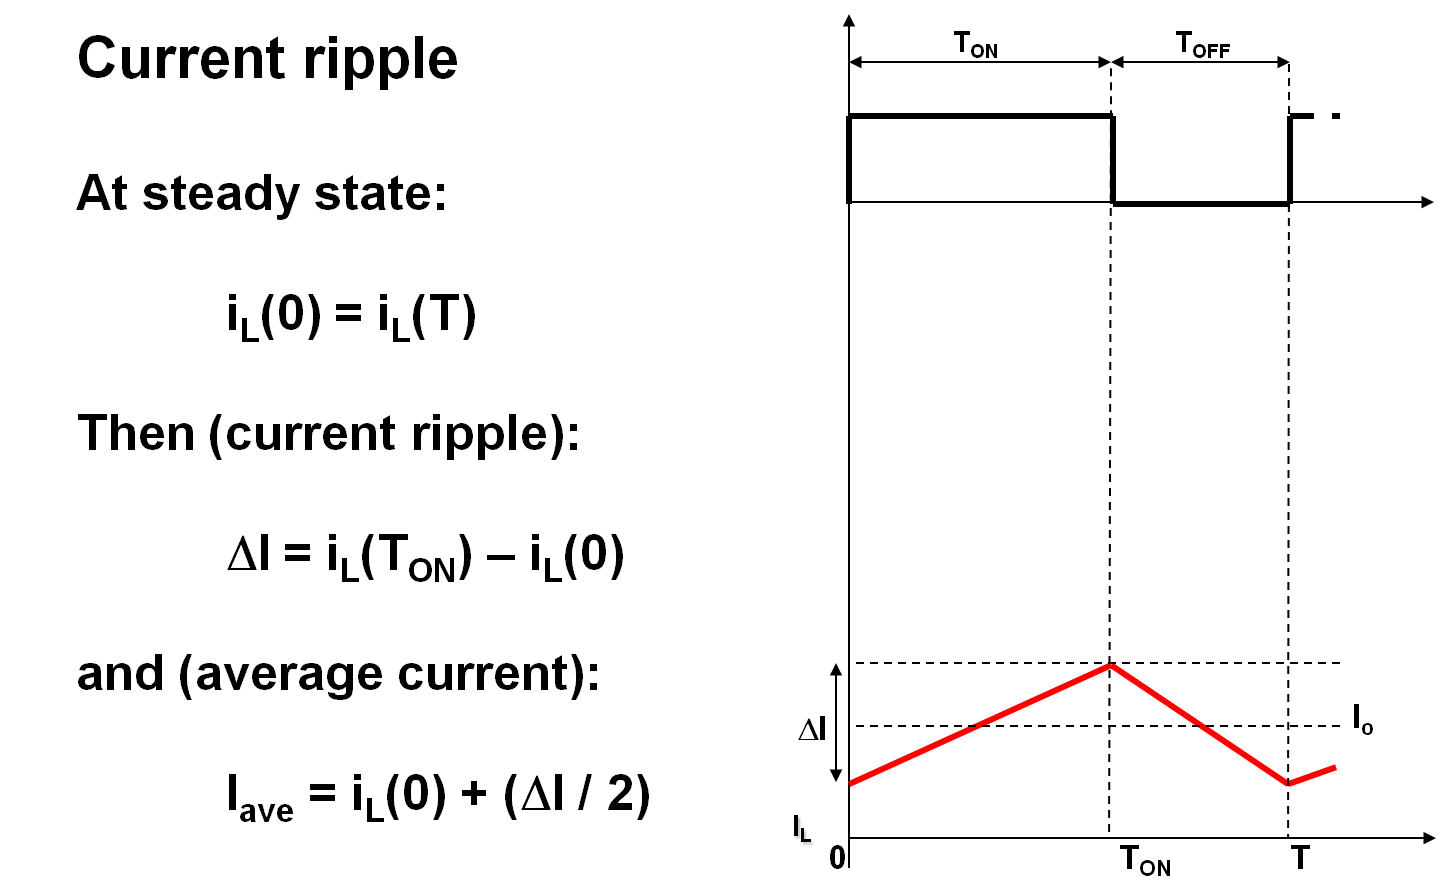 Buck converter inductor current ripple